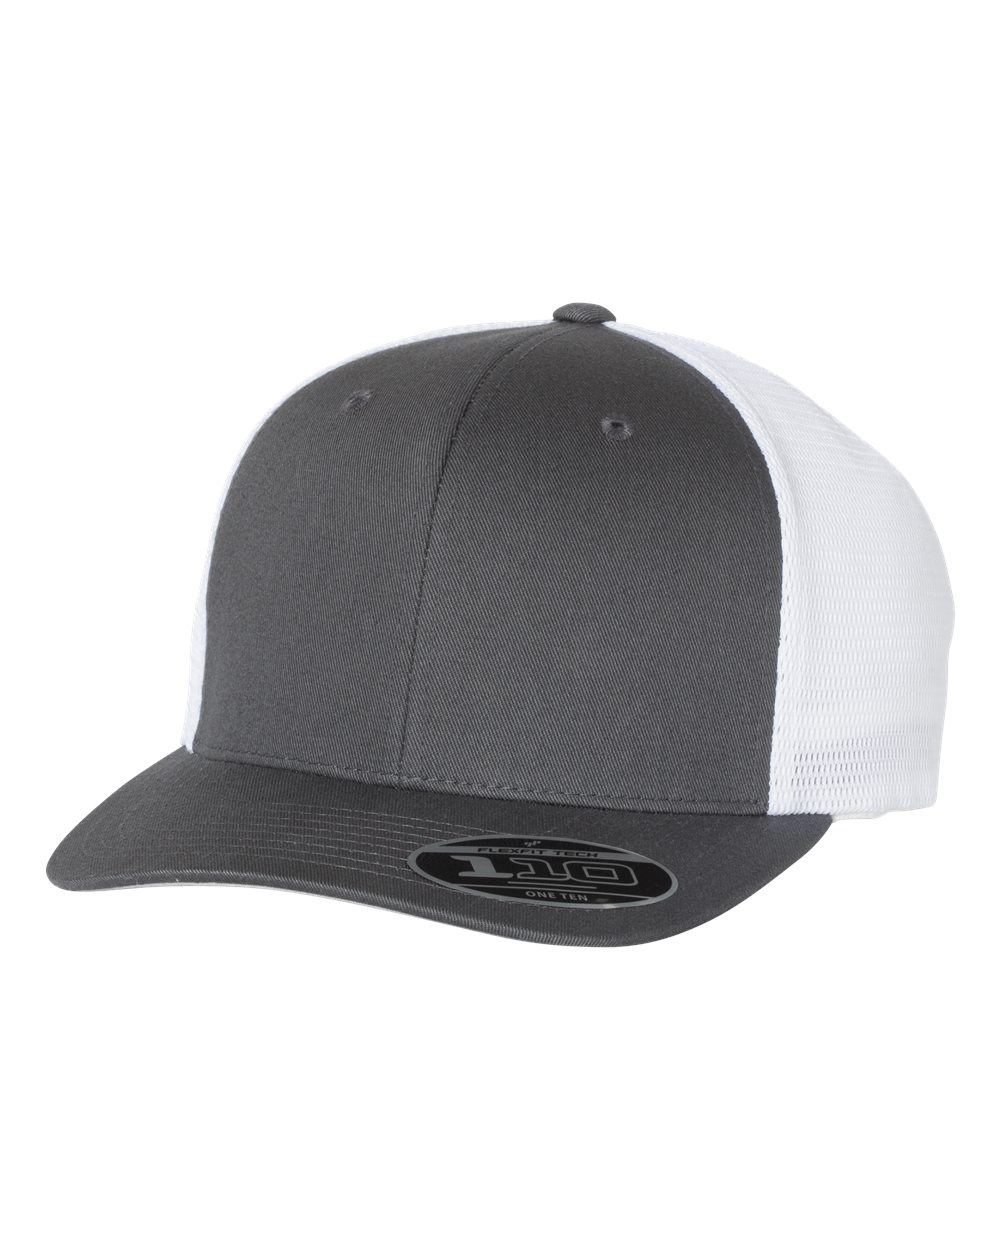 Flexfit 110M - 110® Mesh-Back Cap